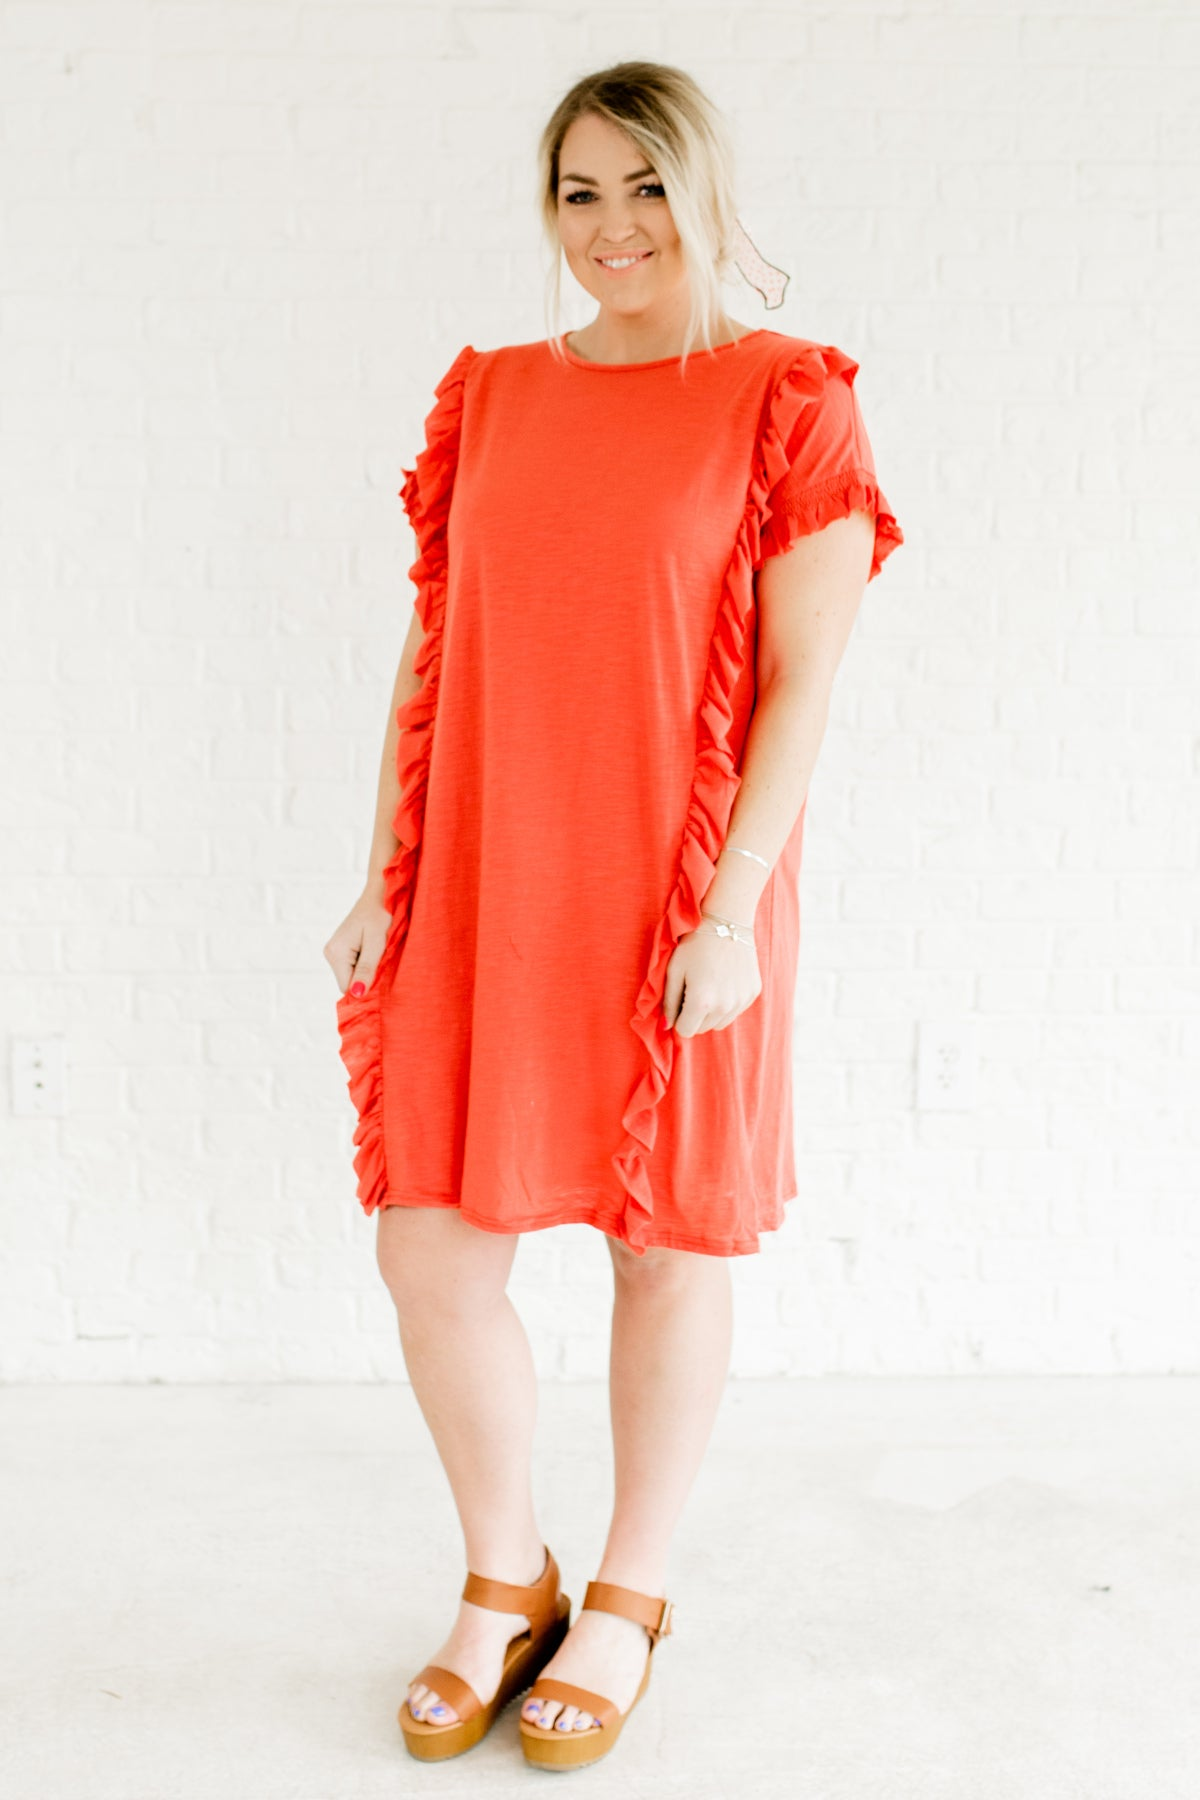 Best of Friends Coral Red Knee-Length Dress